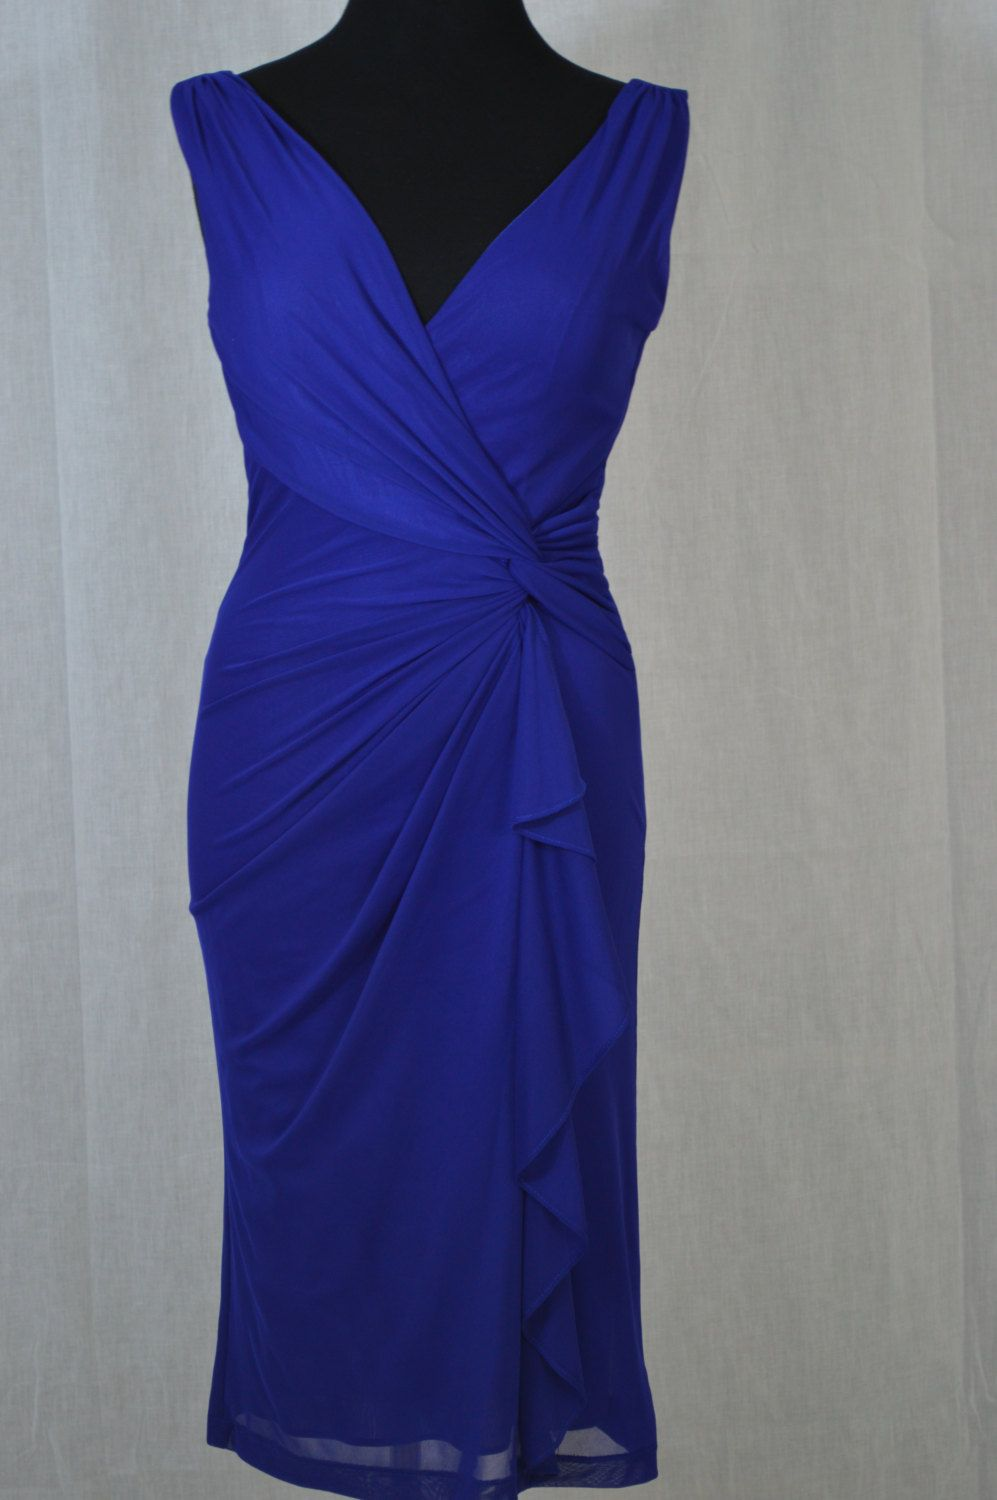 Mother of the bride or groom. Flirty, sexy wrap dress | Pinterest